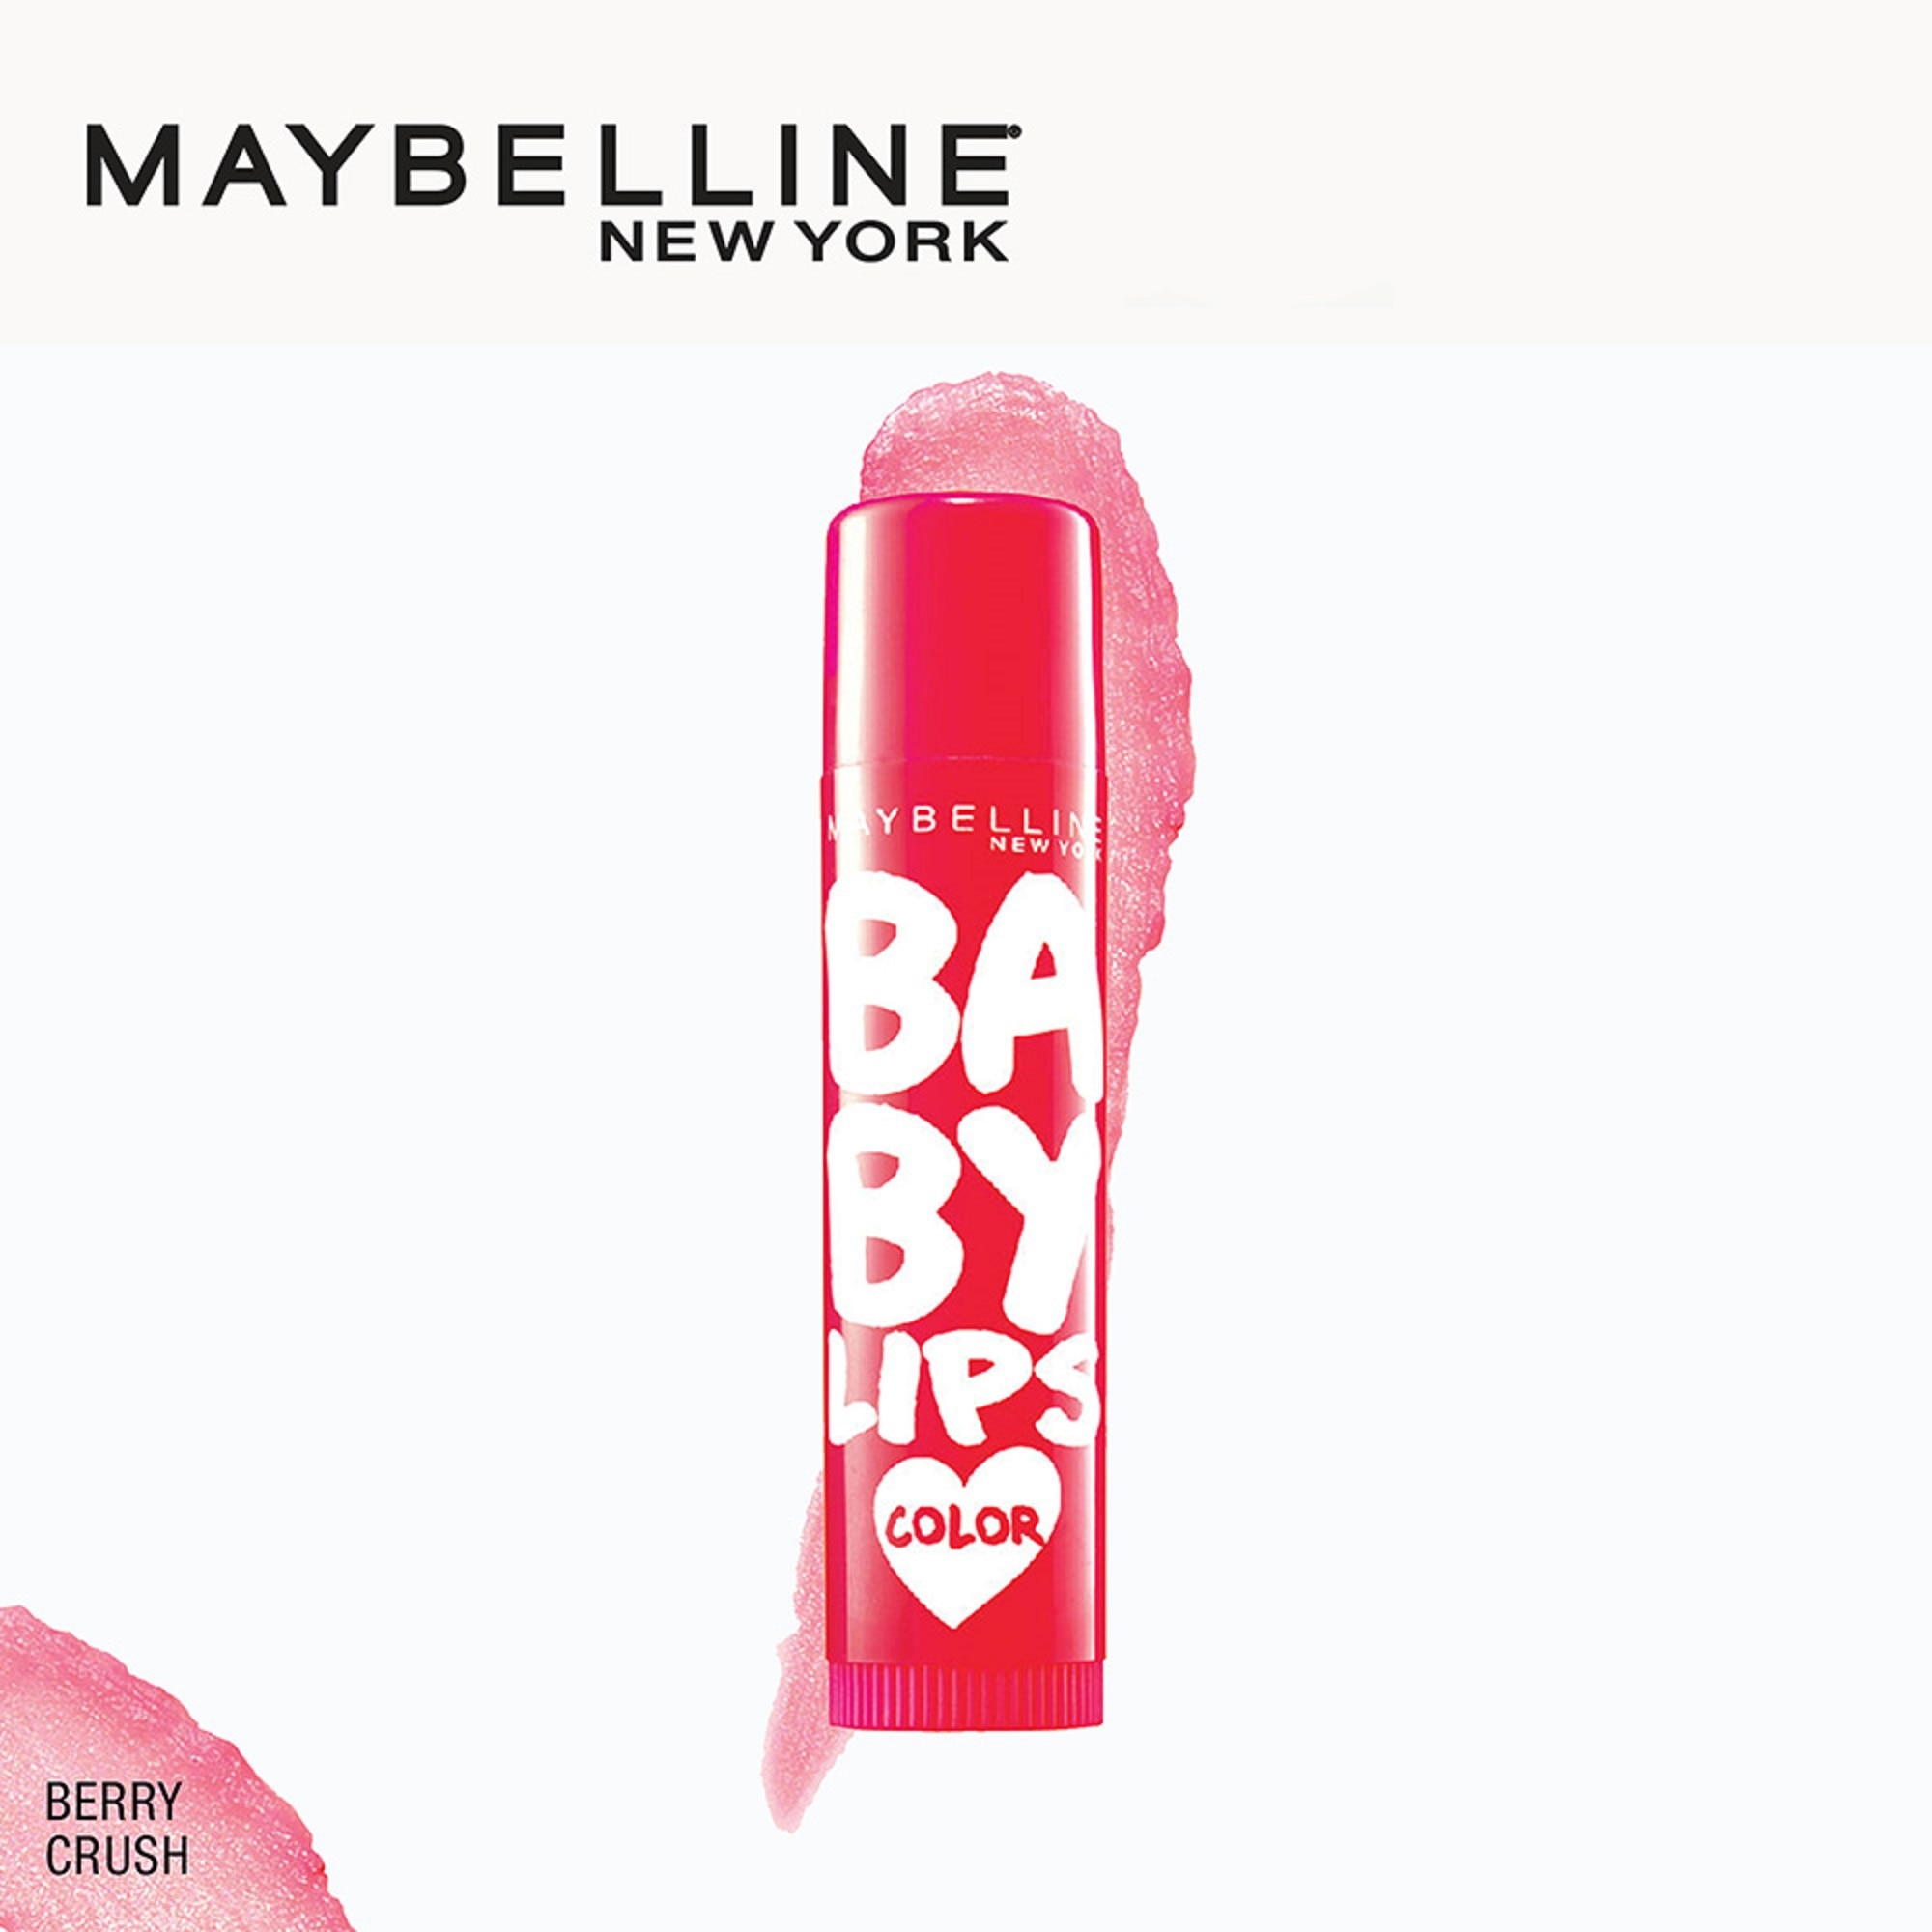 MAYBELLINEBaby Lips Loves Color Lip Balm - Berry Crush 4g,LipbalmFree (1) Watsons Dermaction Plus Antiacne St20x2 for every purchase of Skin Care products